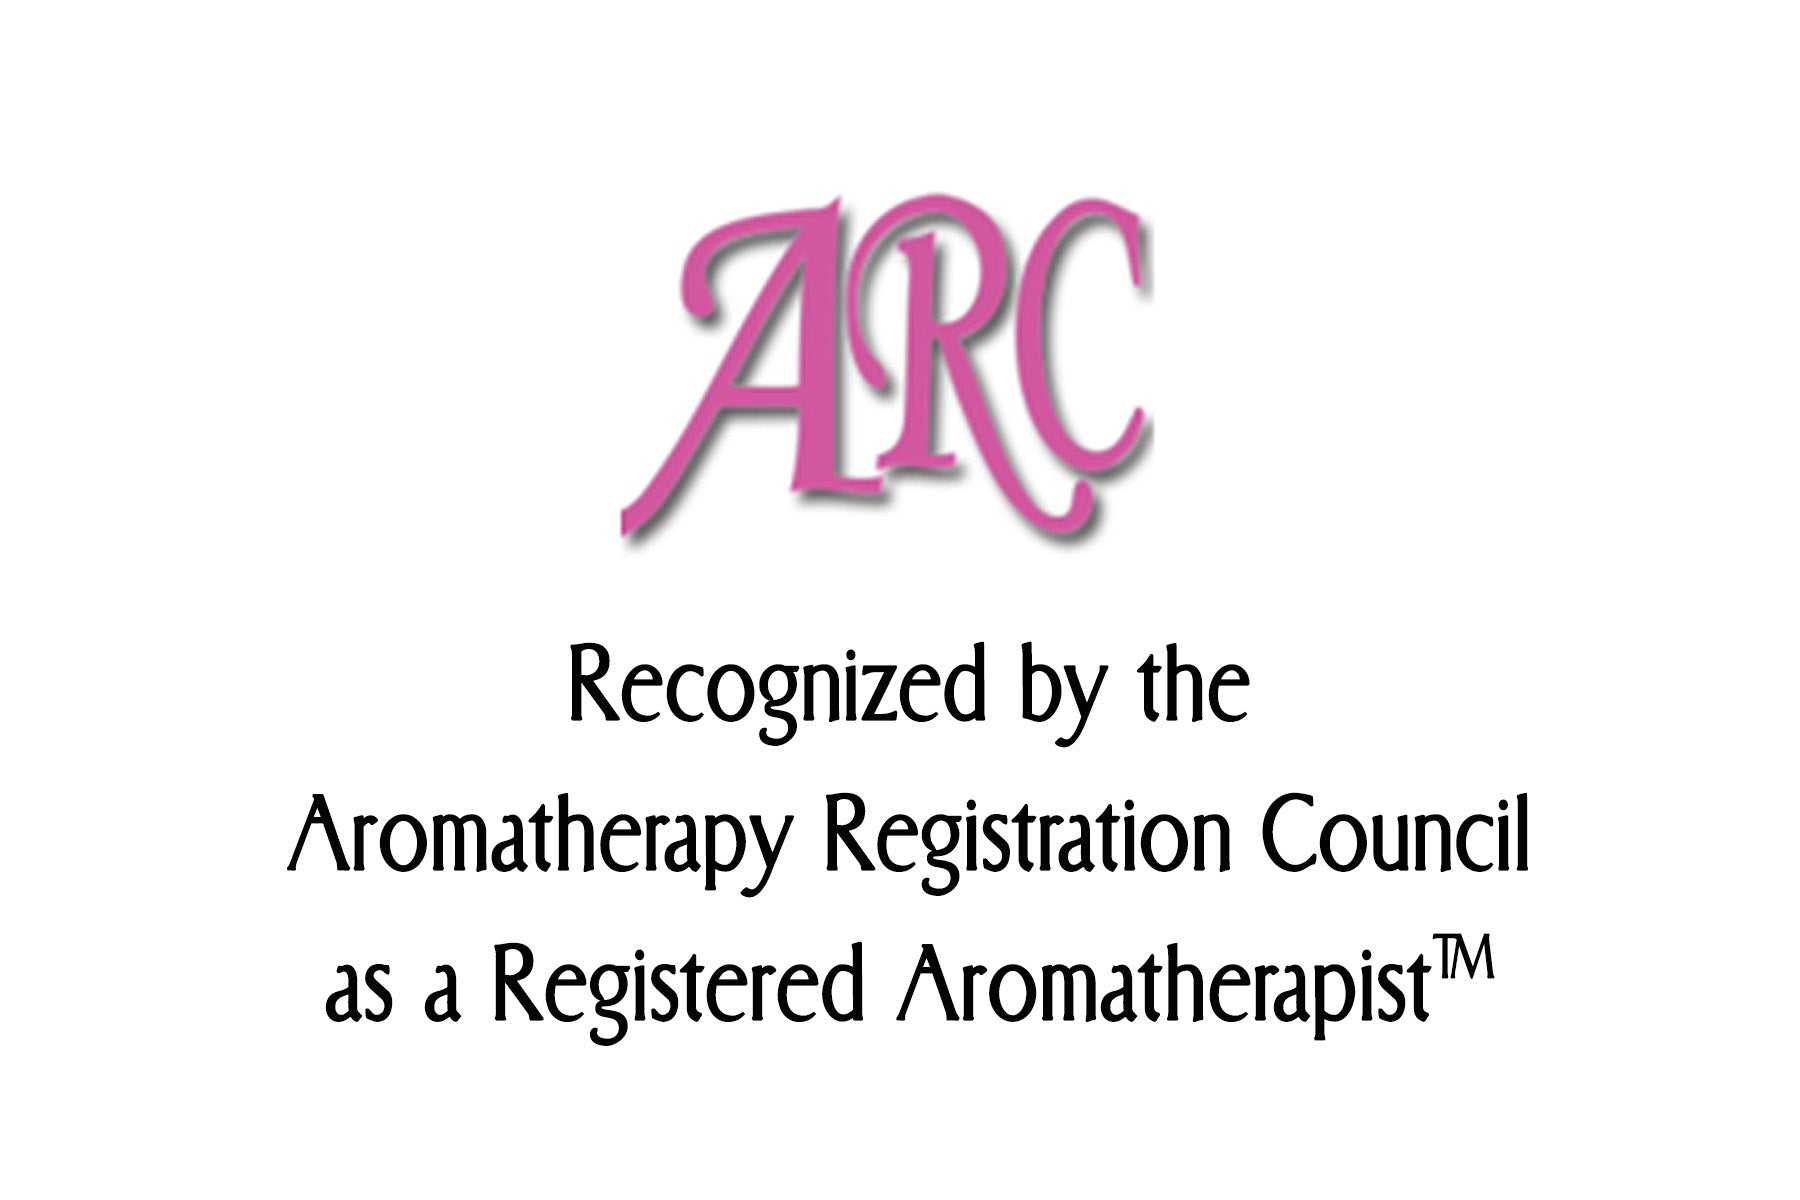 Aromatherapy Registration Counsel